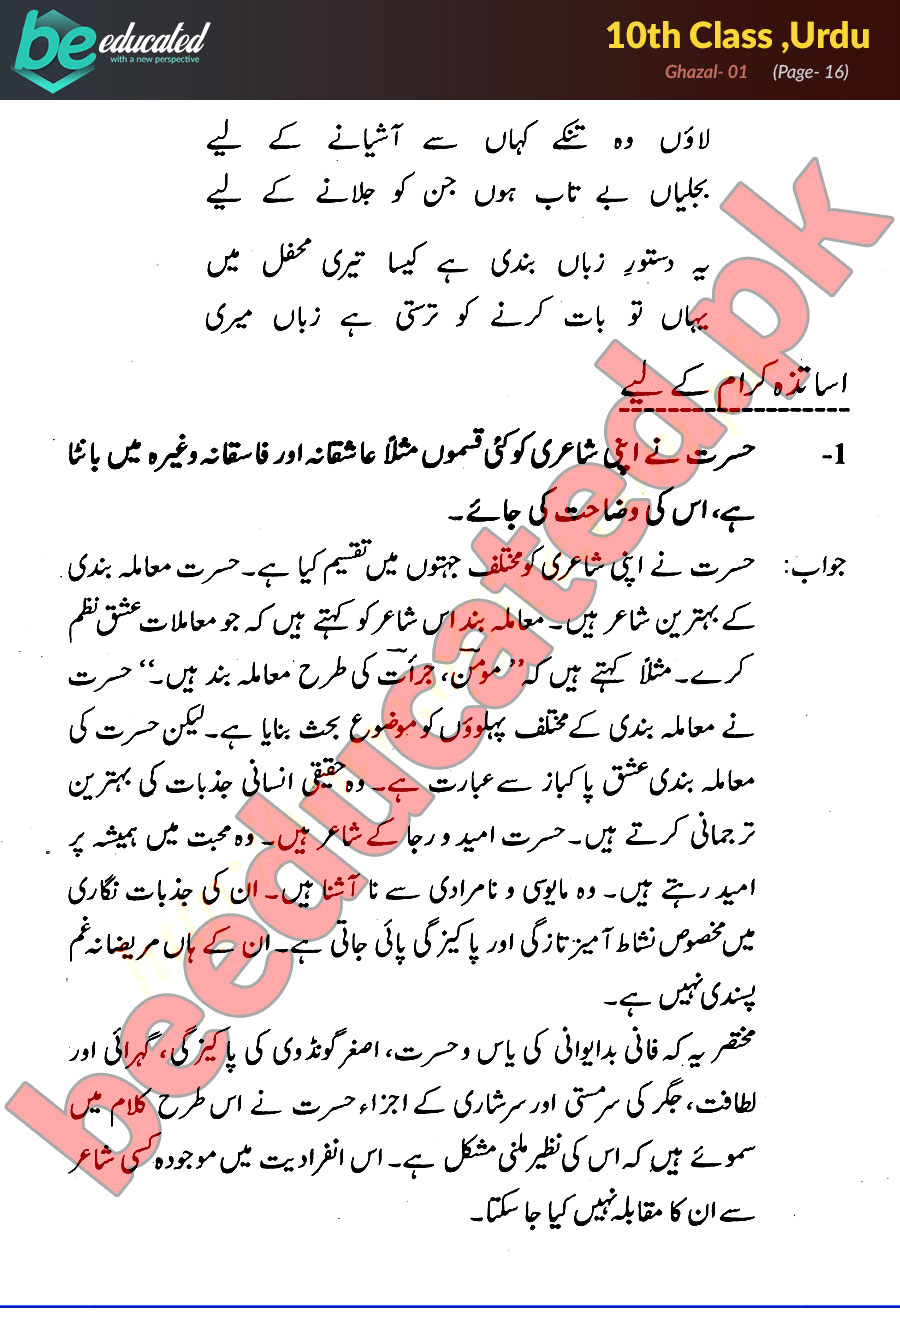 Ghazal 1 Urdu 10th Class Notes - Matric Part 2 Notes